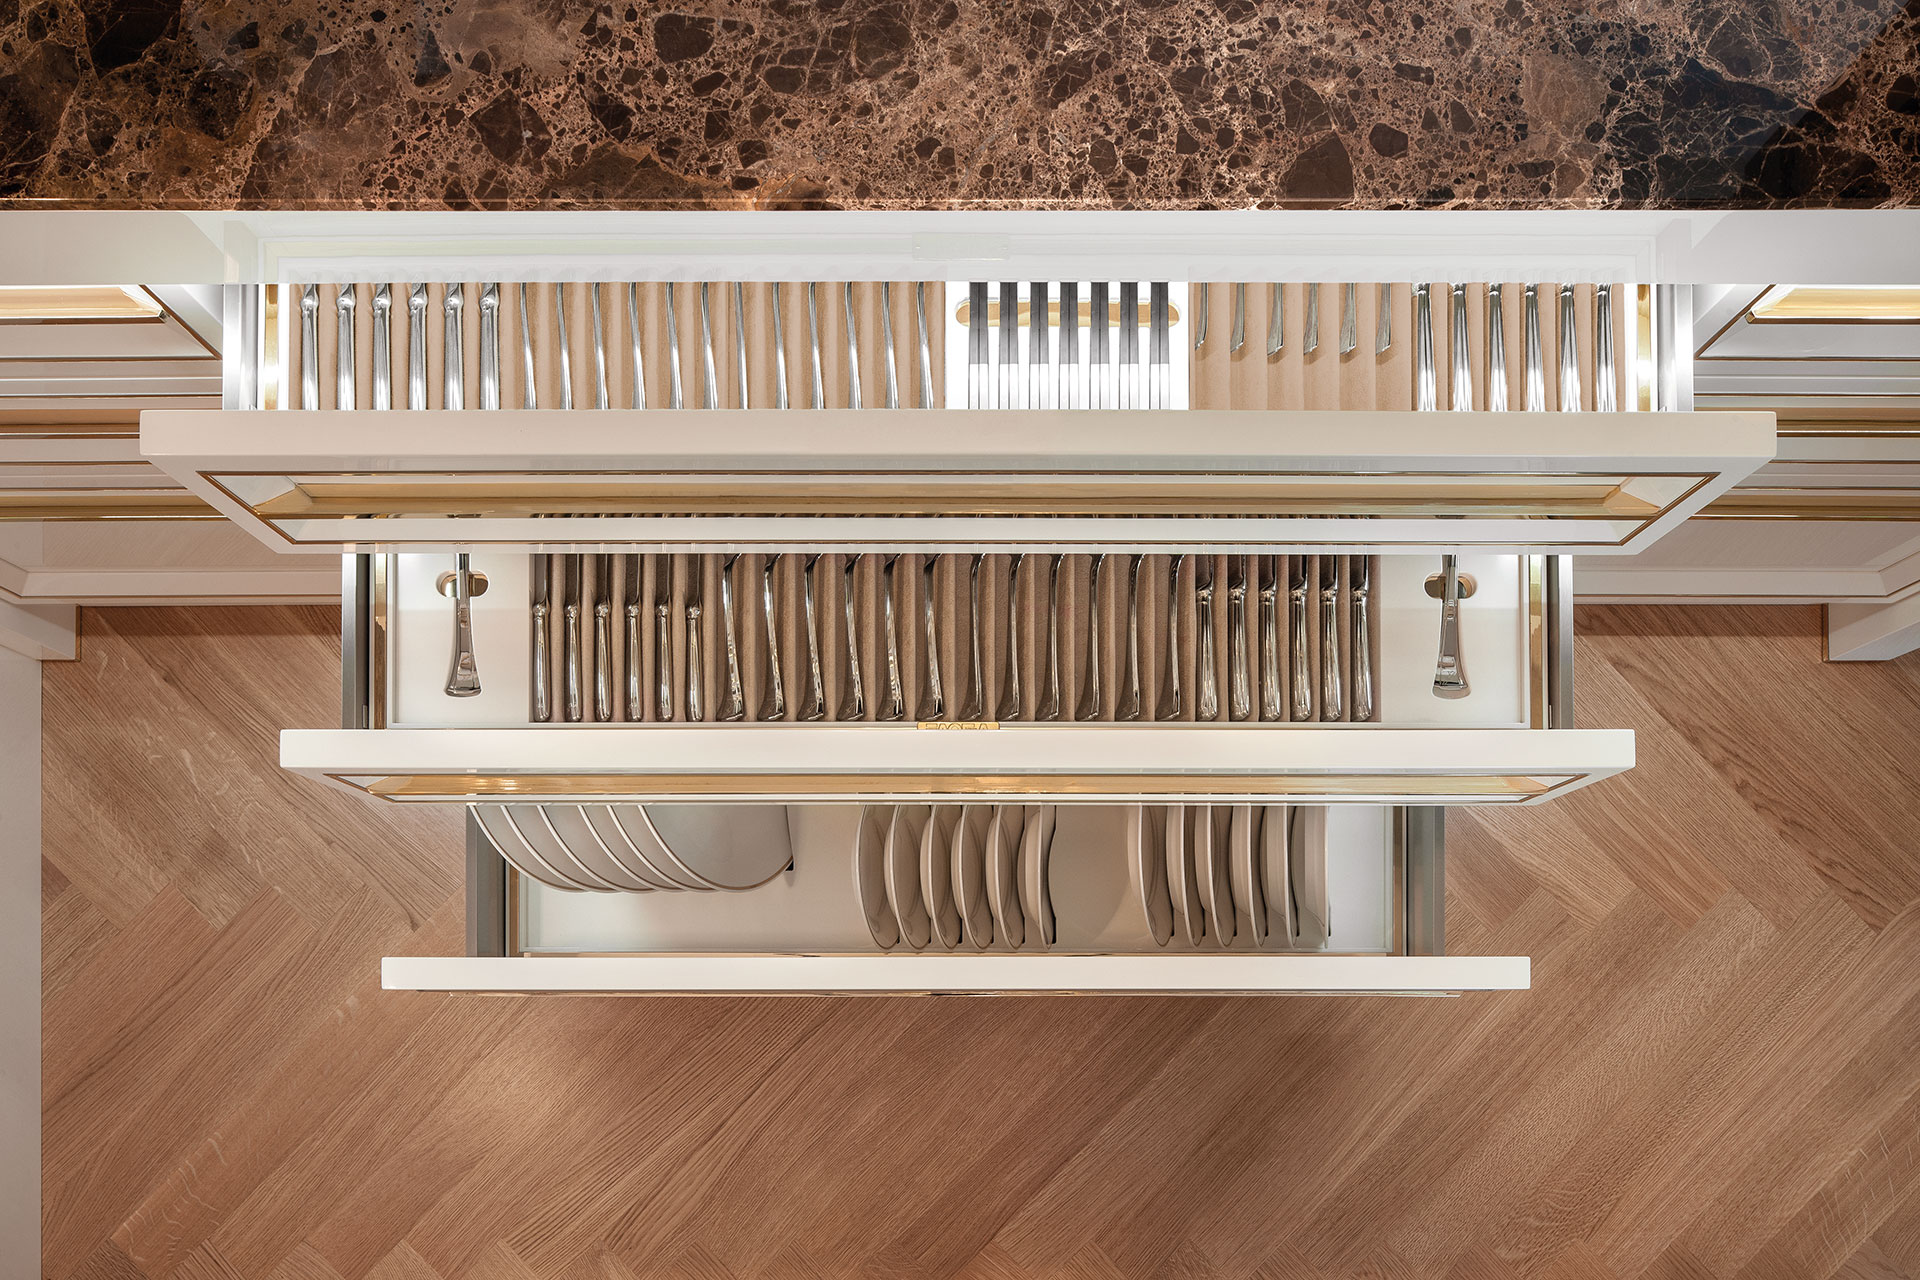 Faoma Zairo equipped kitchen drawers